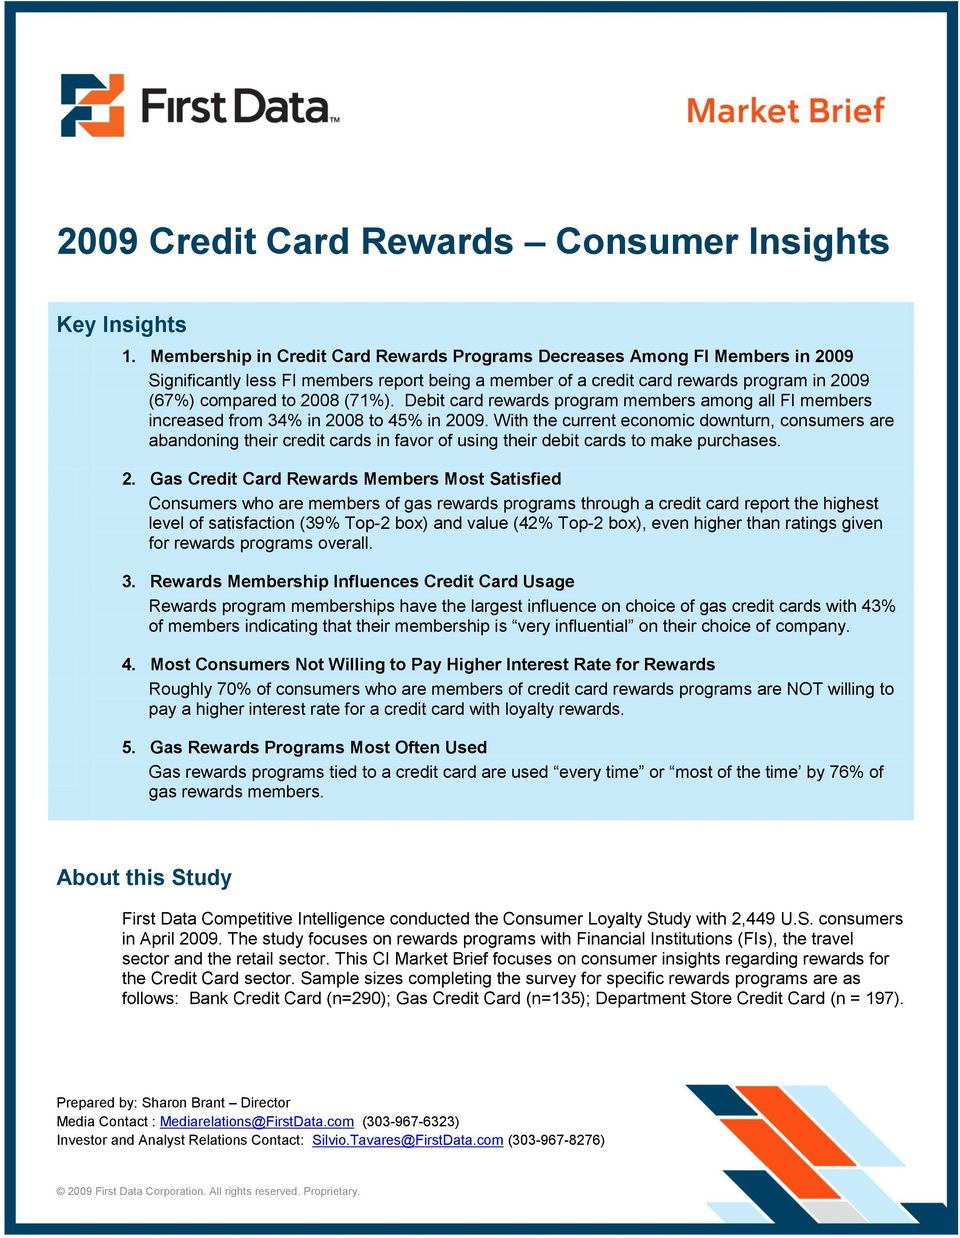 Debit card rewards program members among all FI members increased from 34% in 2008 to 45% in 2009.